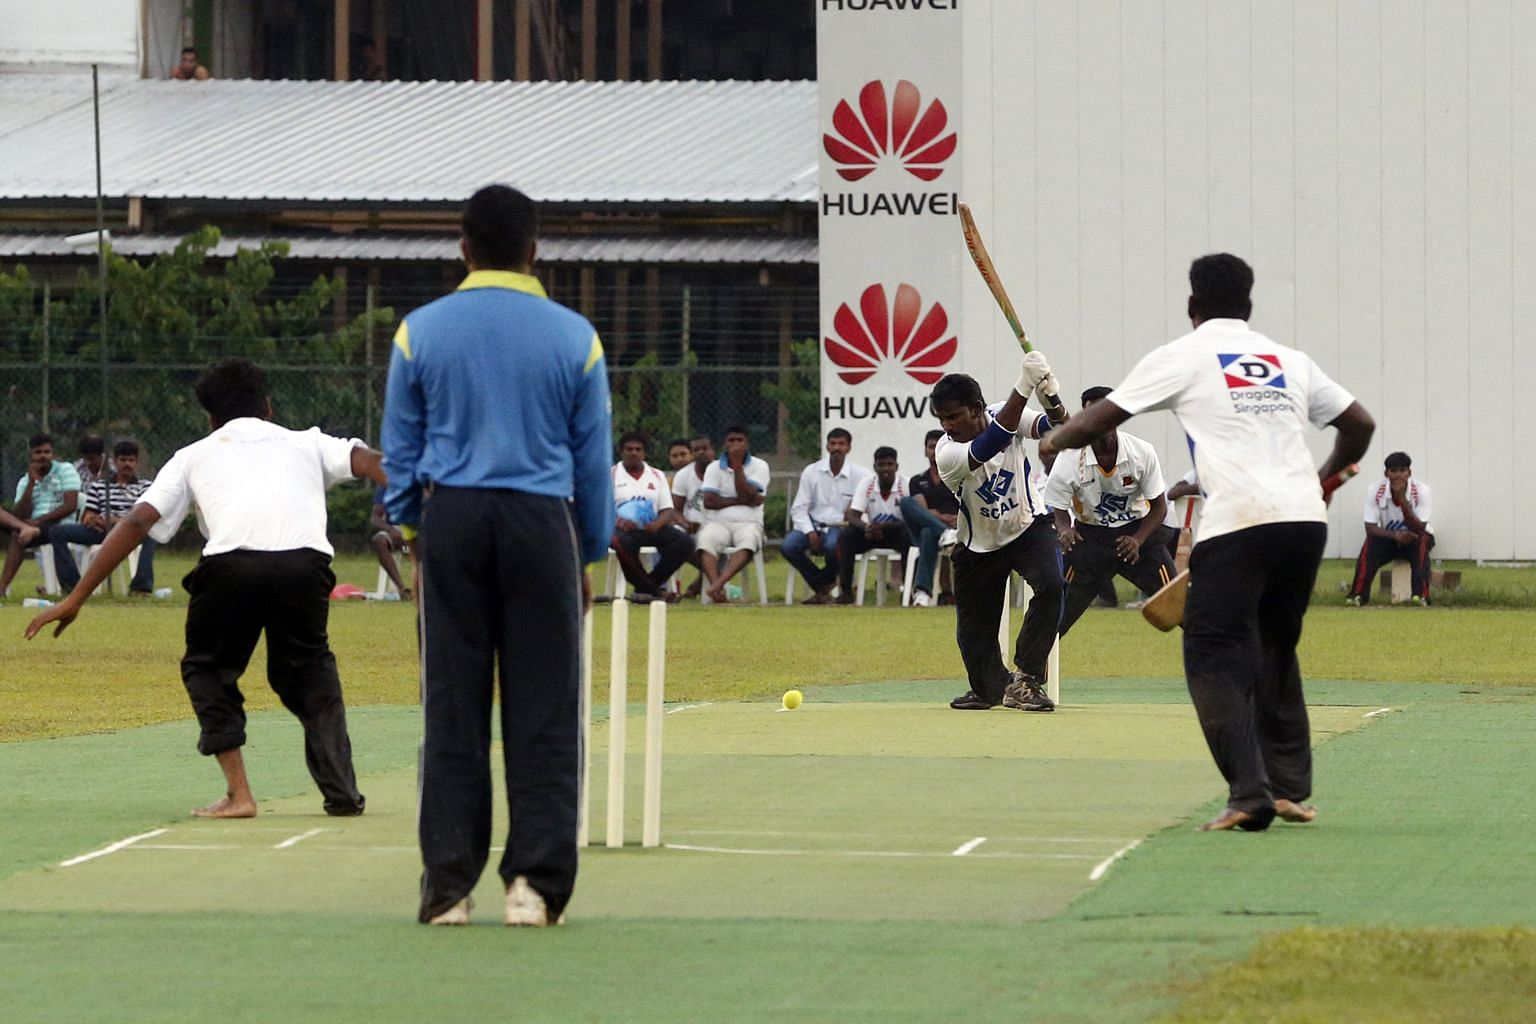 The Scal Cricket Challenge Cup event was held at the Scal Recreation Centre yesterday and on Sunday.